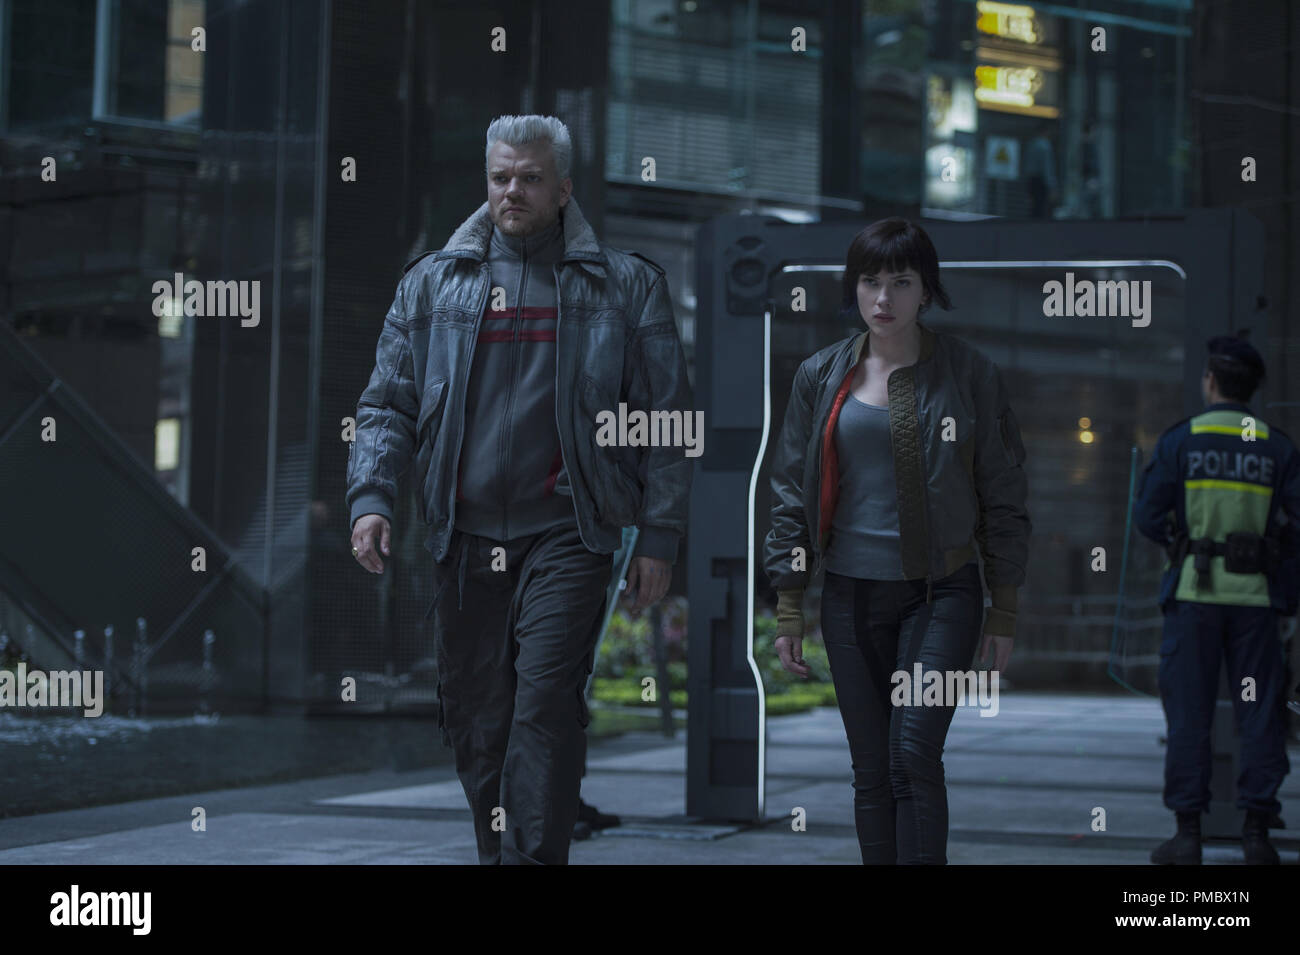 Scarlett Johansson Plays The Major And Pilou Asbaek Plays Batou In Ghost In The Shell From Paramount Pictures And Dreamworks Pictures 2017 Stock Photo Alamy